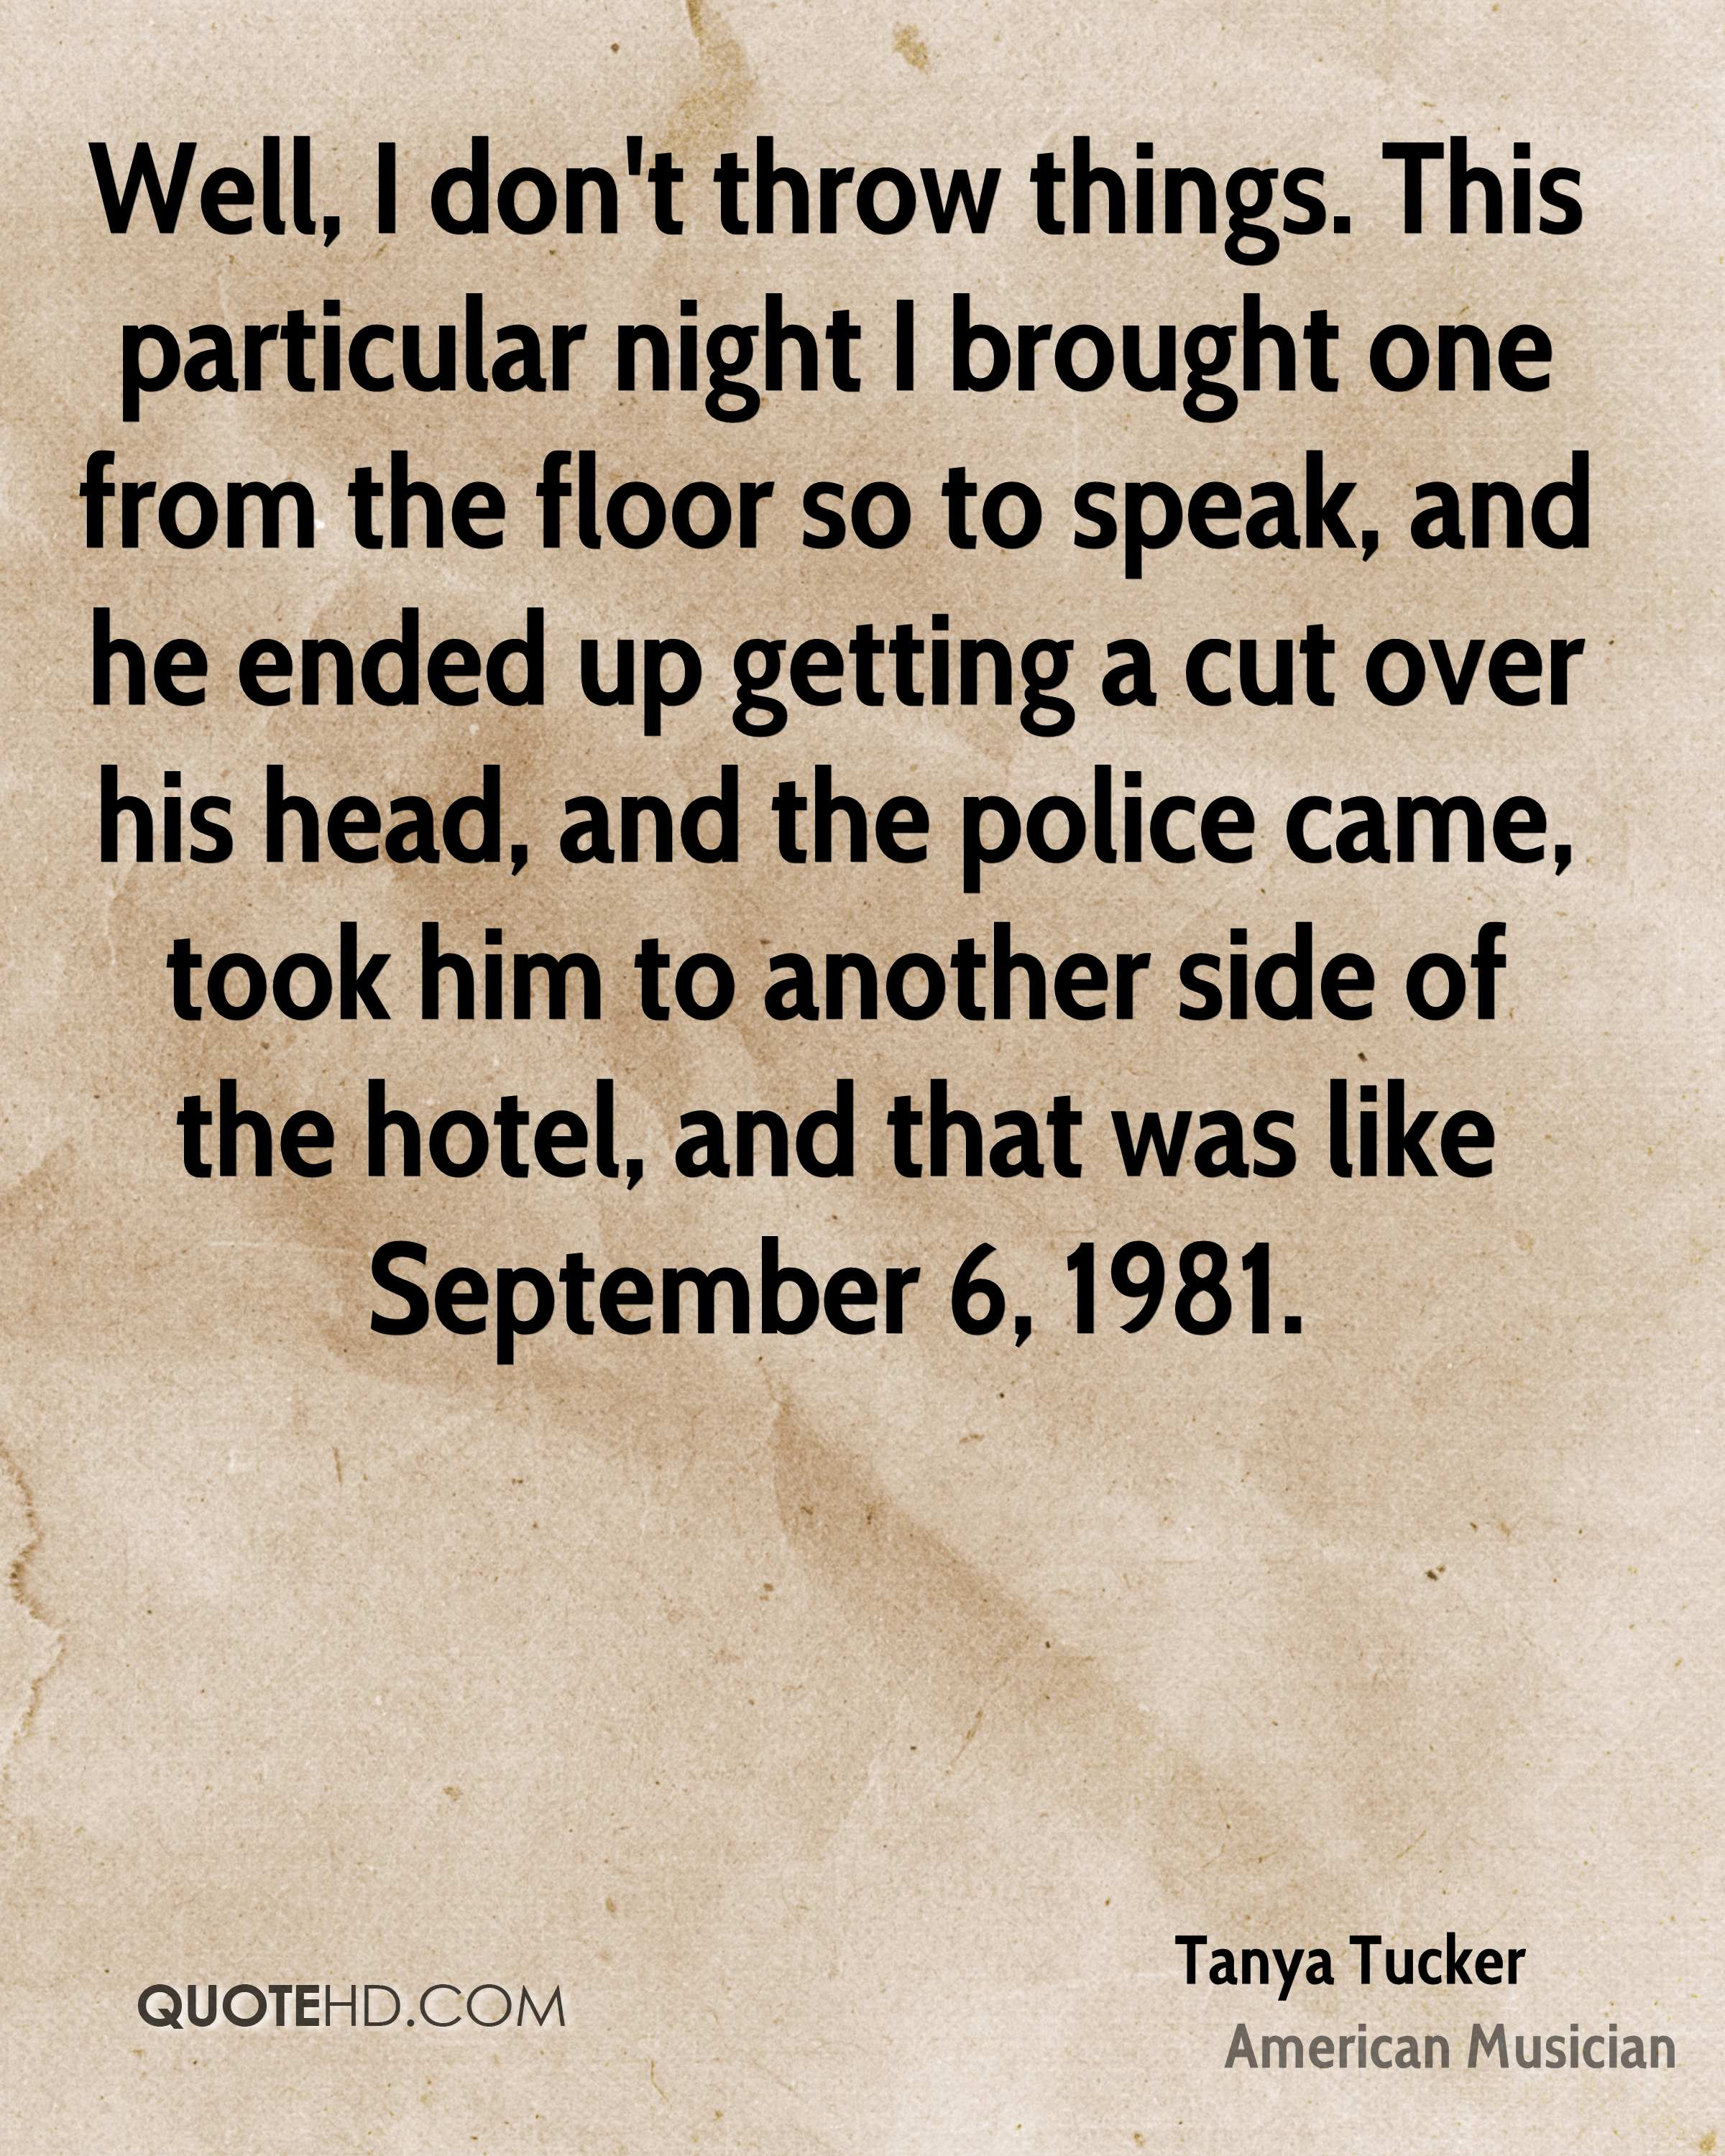 Well, I don't throw things. This particular night I brought one from the floor so to speak, and he ended up getting a cut over his head, and the police came, took him to another side of the hotel, and that was like September 6, 1981.